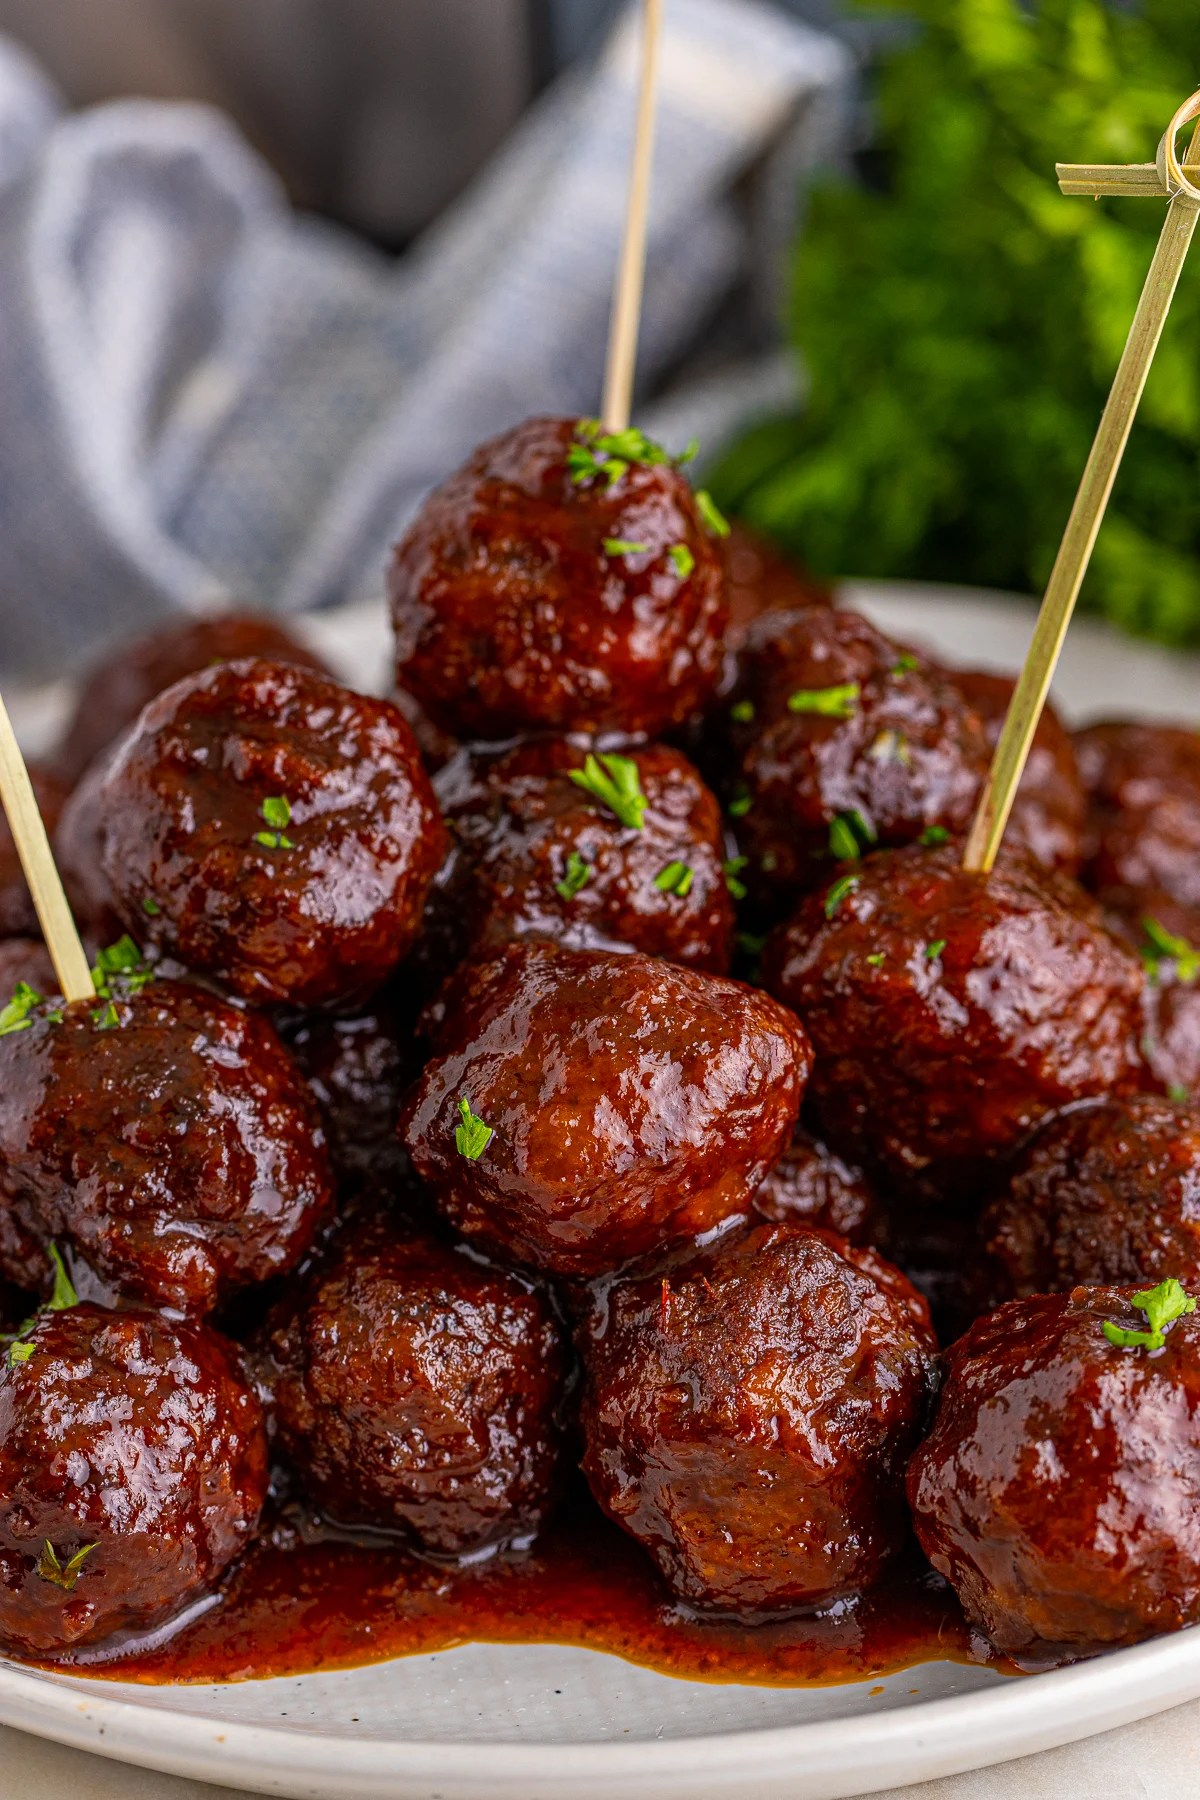 Stacked Crock Pot Grape Jelly Meatballs on plate with toothpicks.